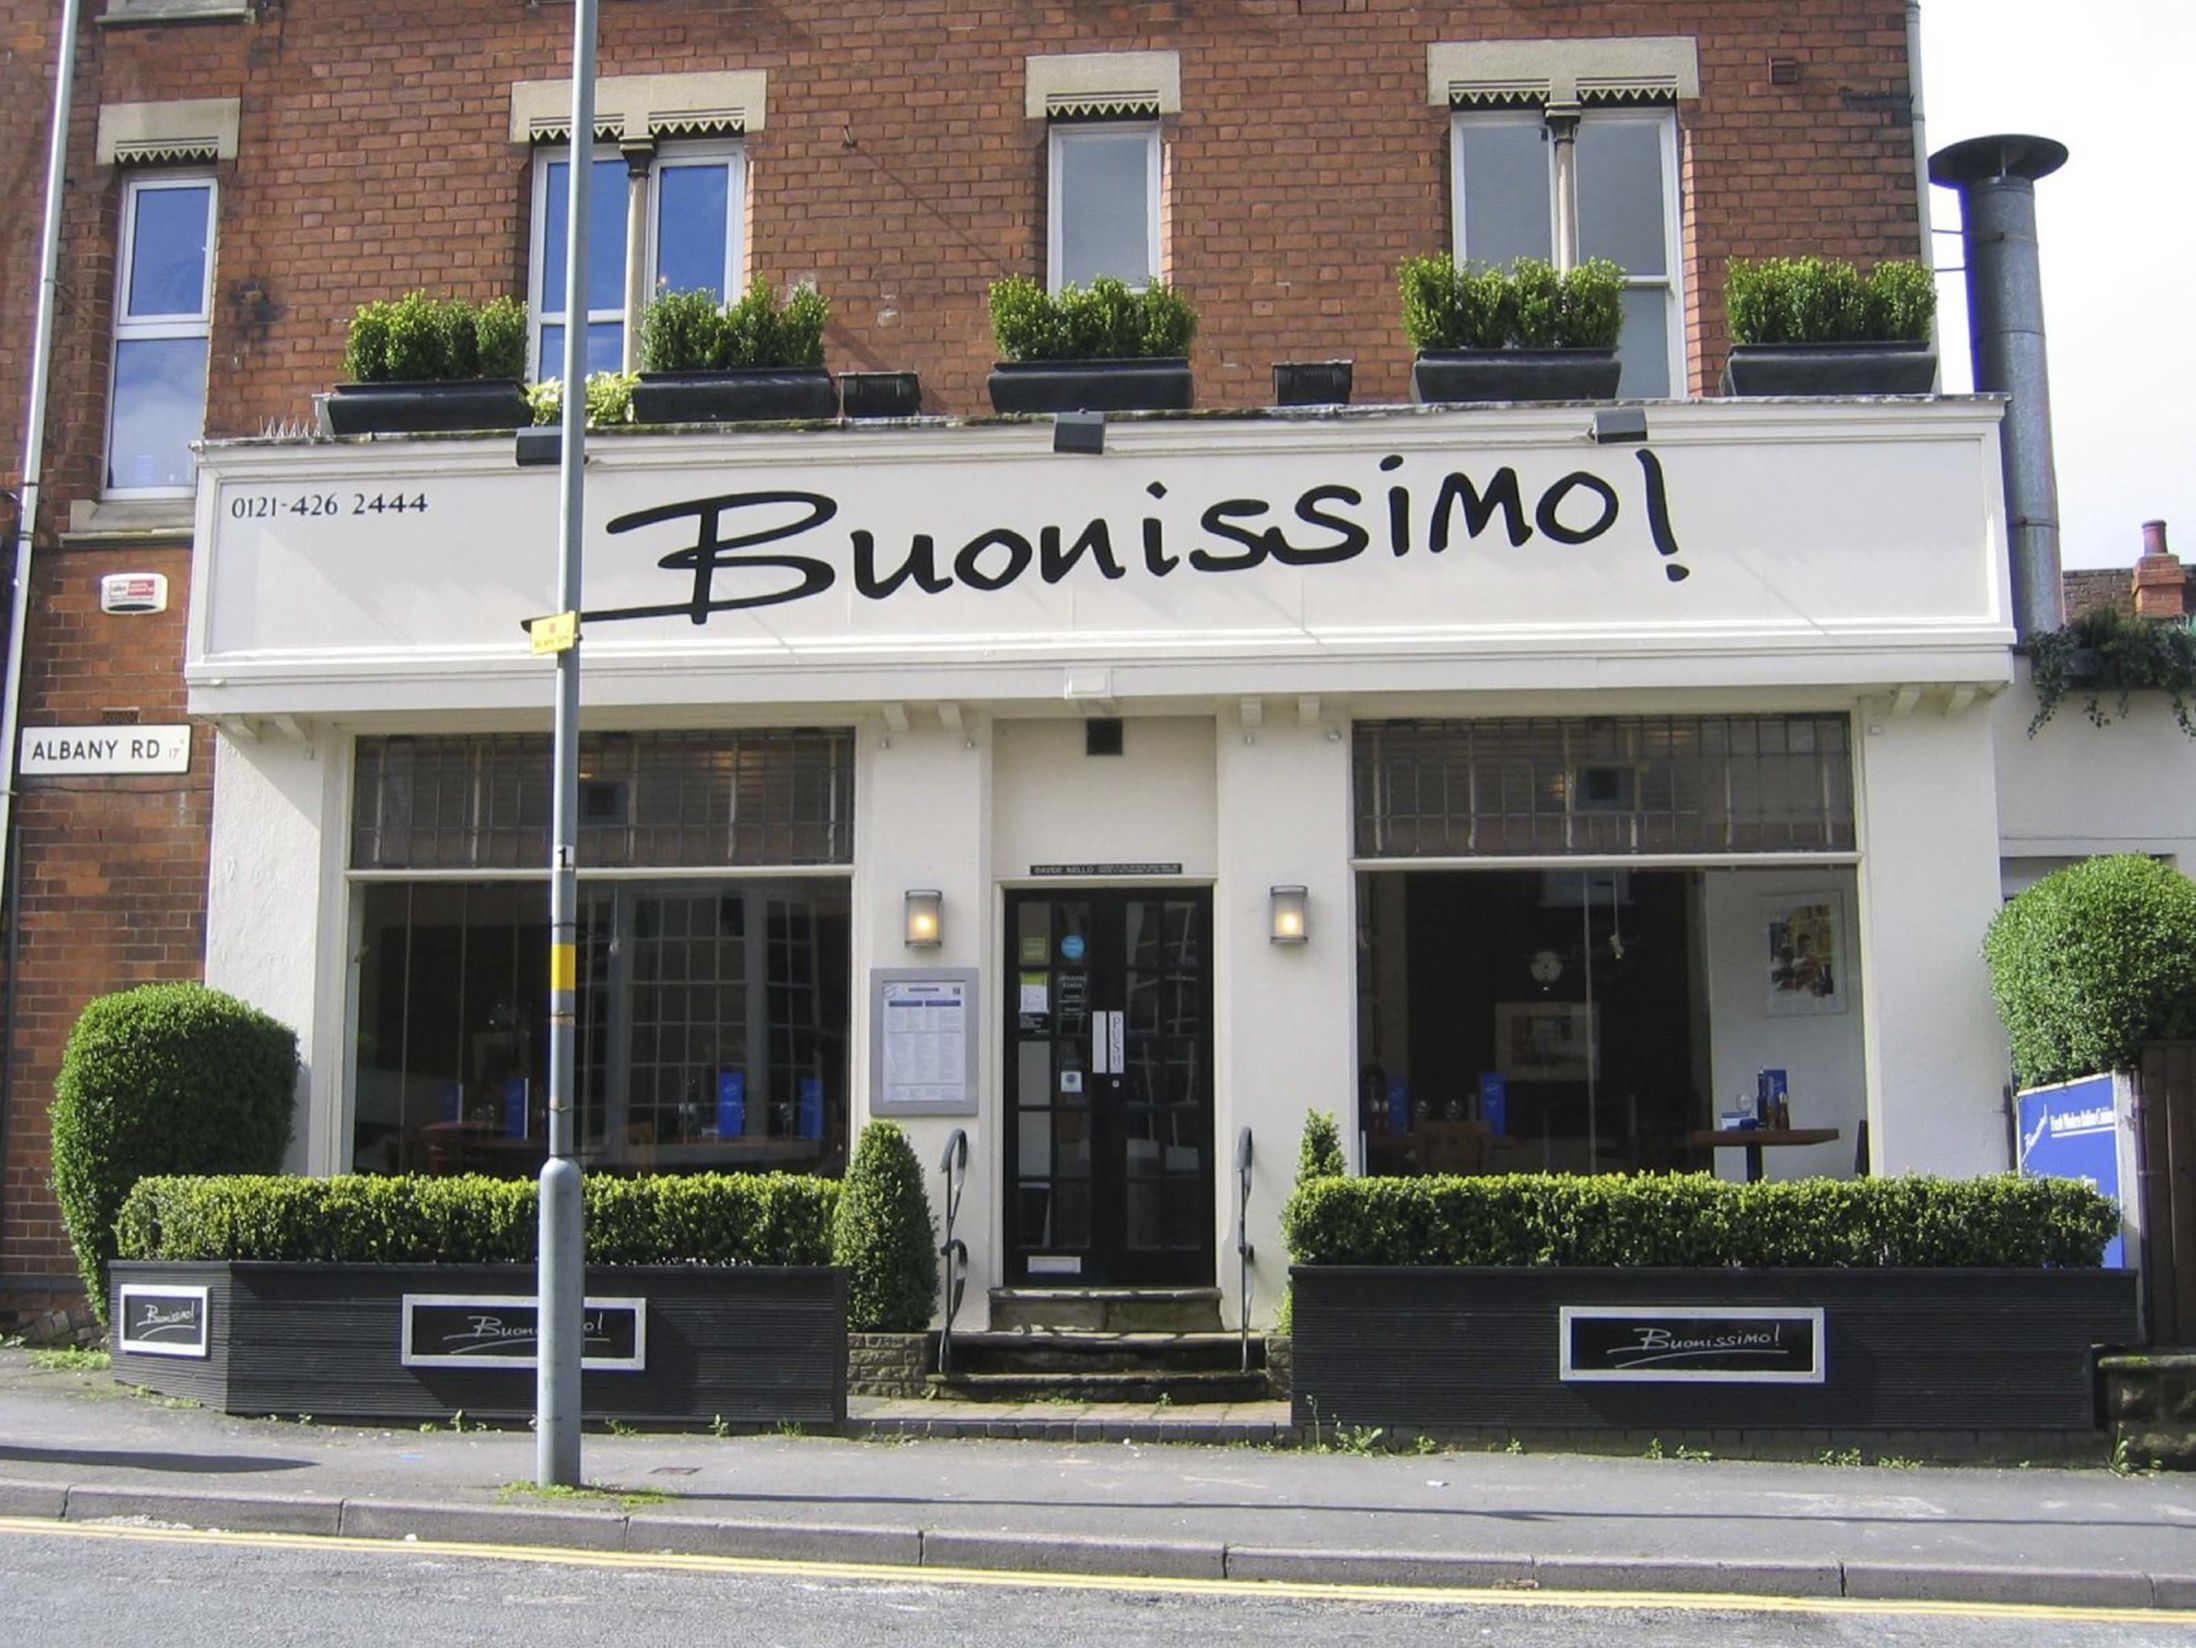 Best Italian Restaurants in Birmingham - Buonissimo